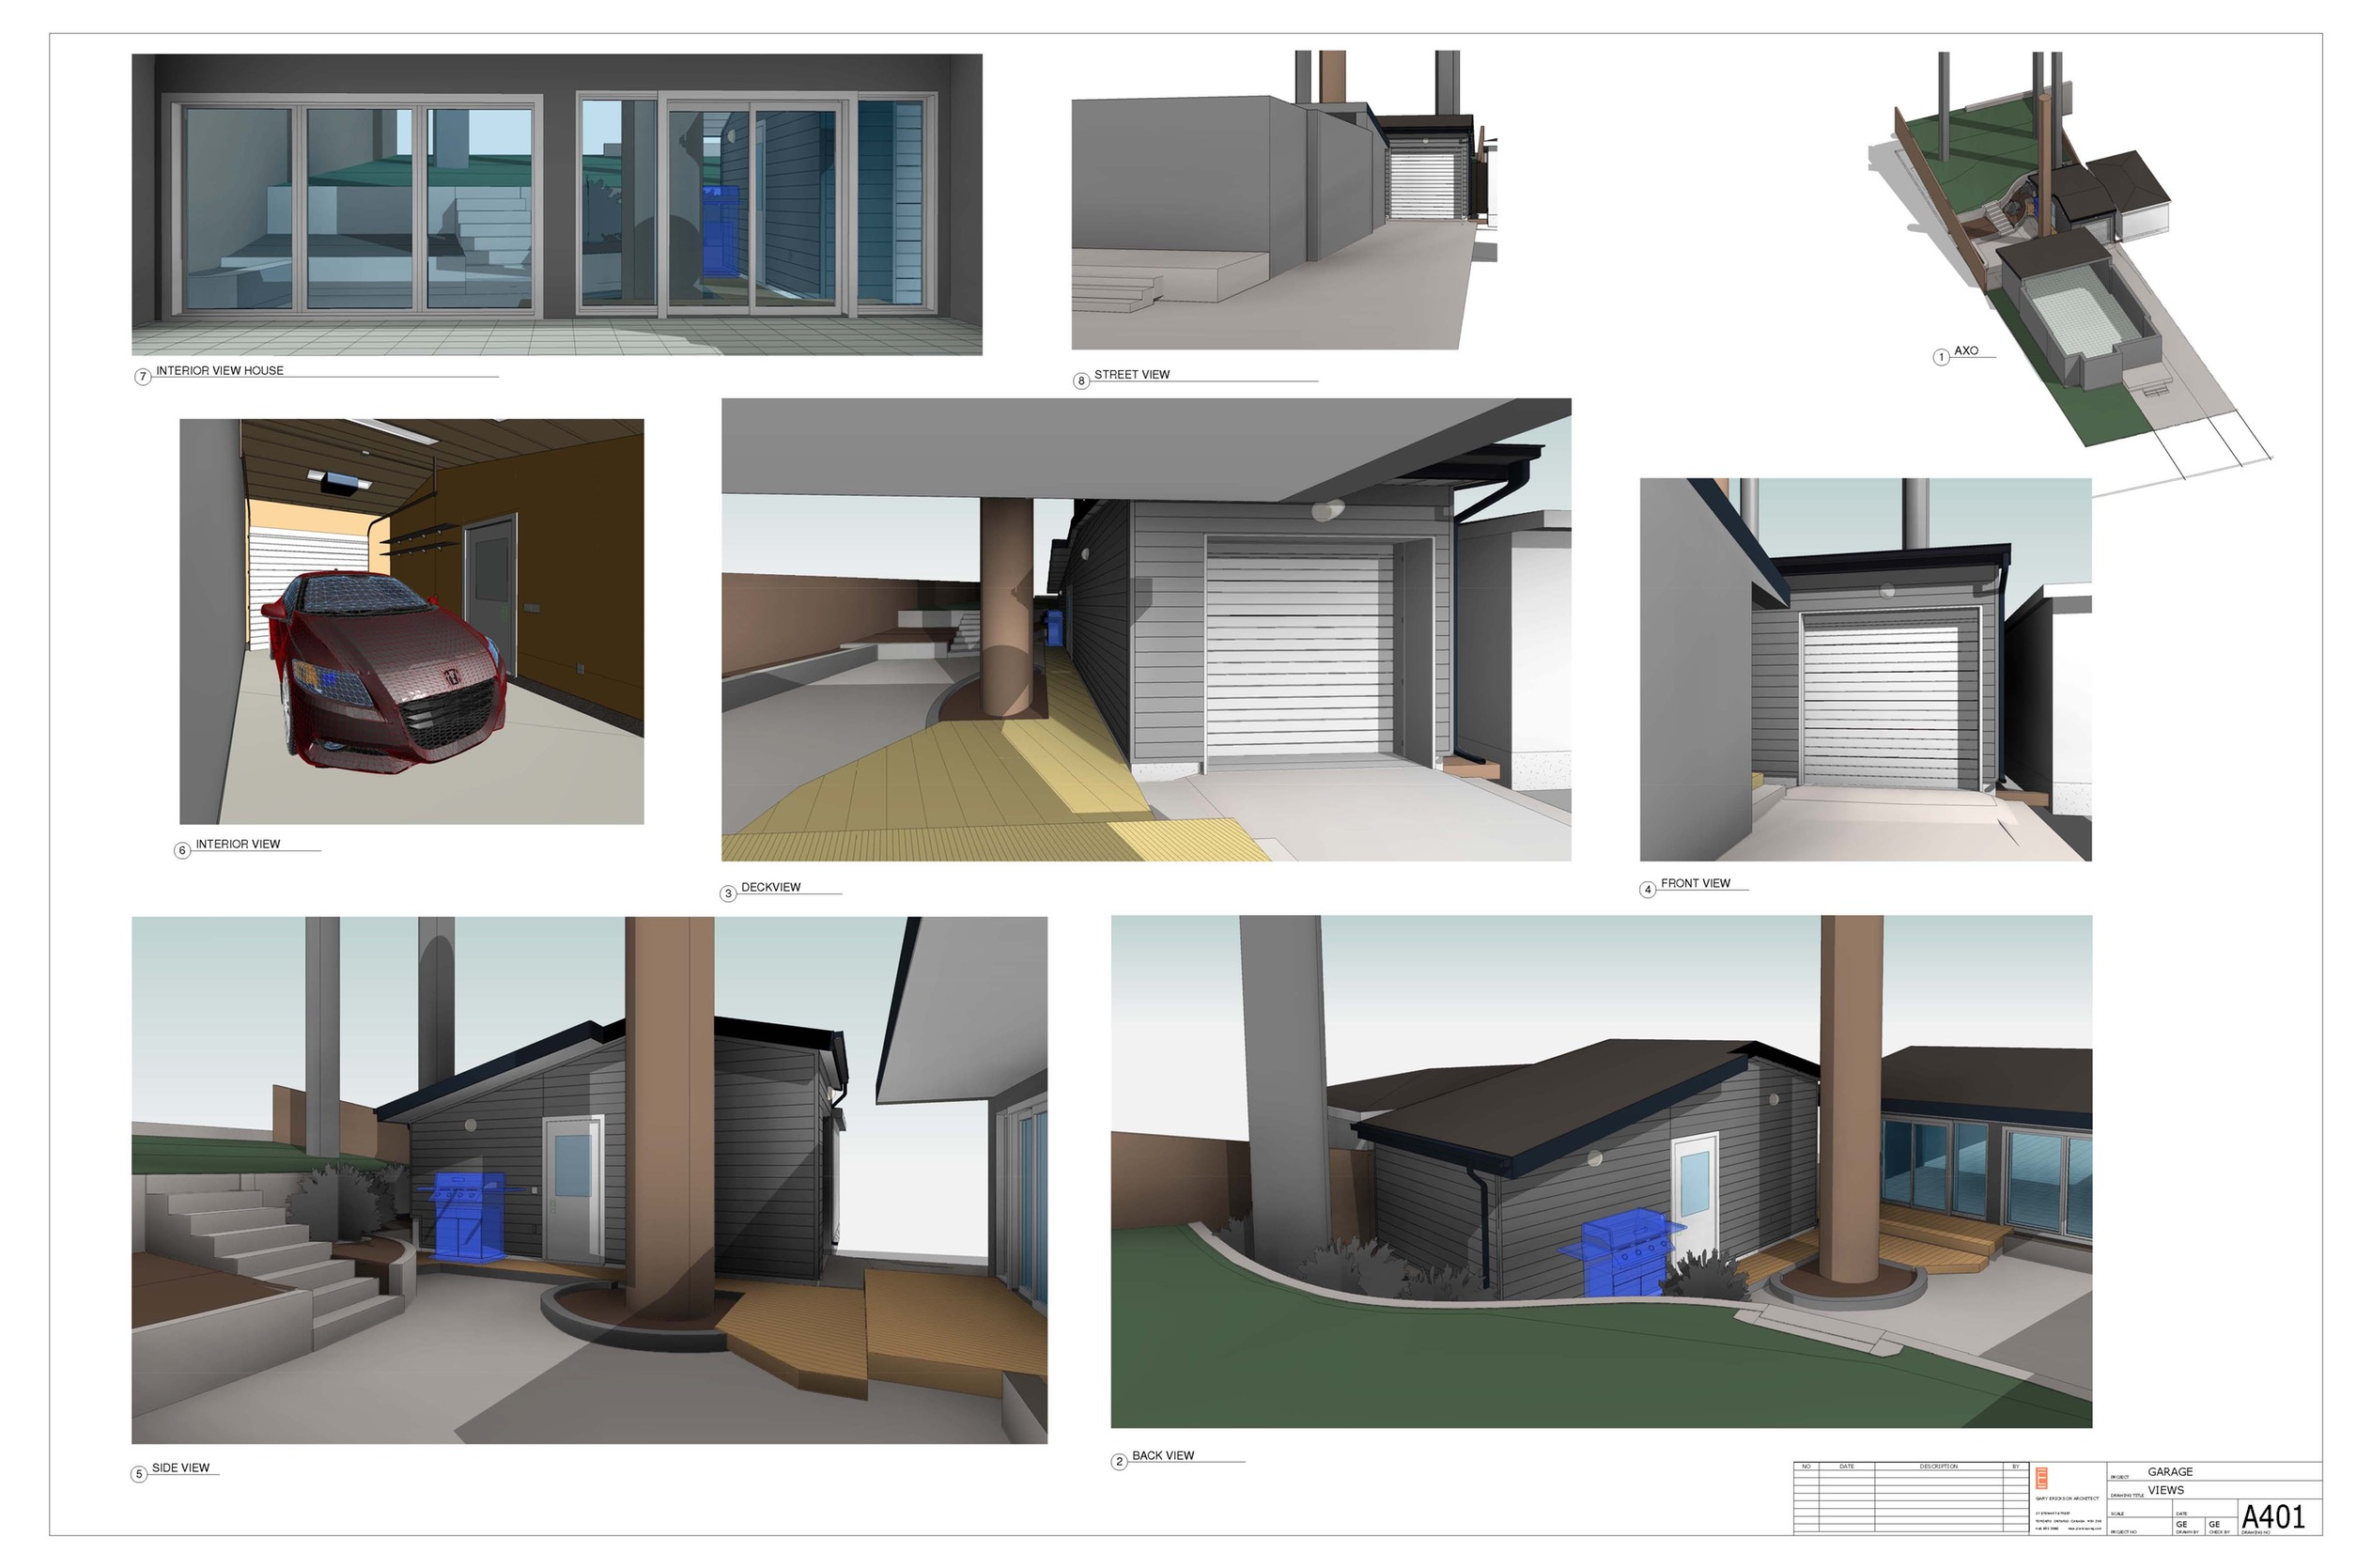 SAMPLES - REVIT BUILDING PERMIT DRAWINGS | ERICKSONG ARCHITECTS INC.